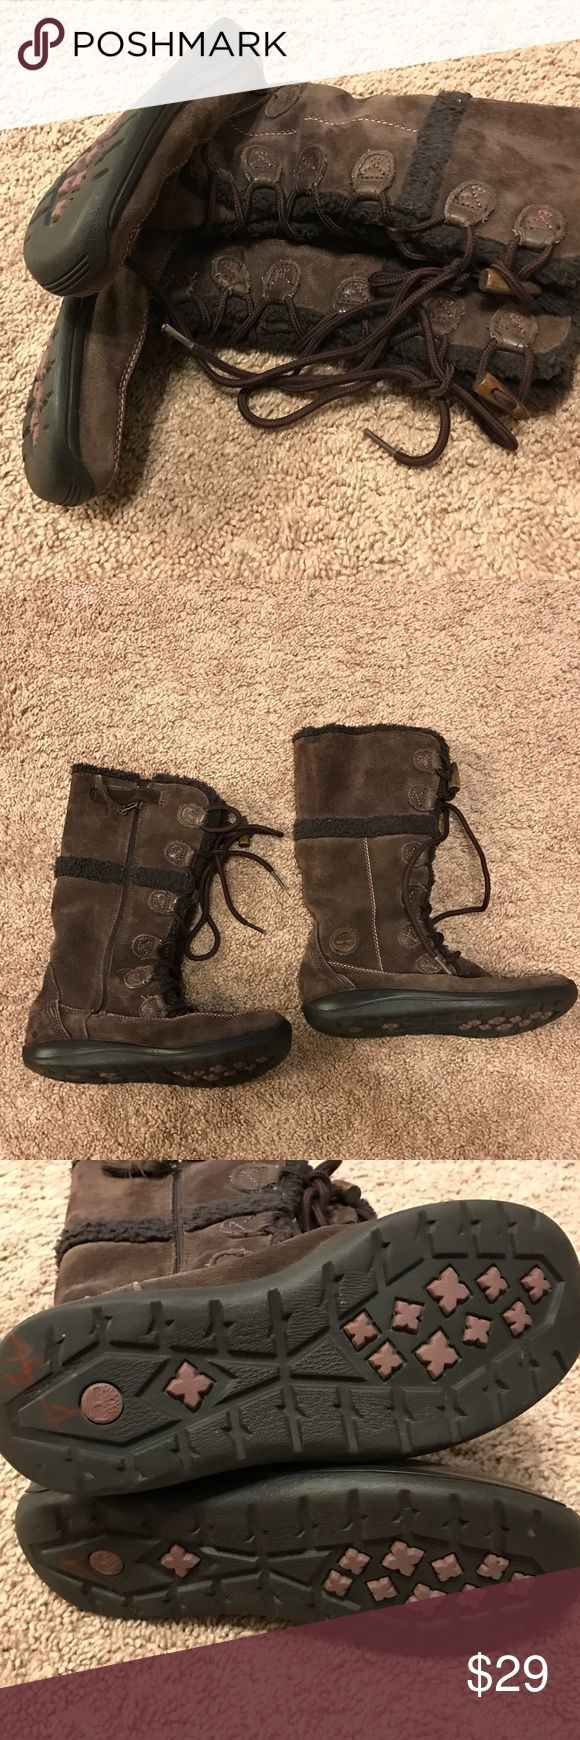 Girls Timberland Suede Lace UpSide Zip Up Boot These boots are in awesome condition!!! Waterproof and real Suede! They have the lace up look but have a zipper to make it easy to put in and off. Sz 3 girls. Timberland Shoes Rain & Snow Boots